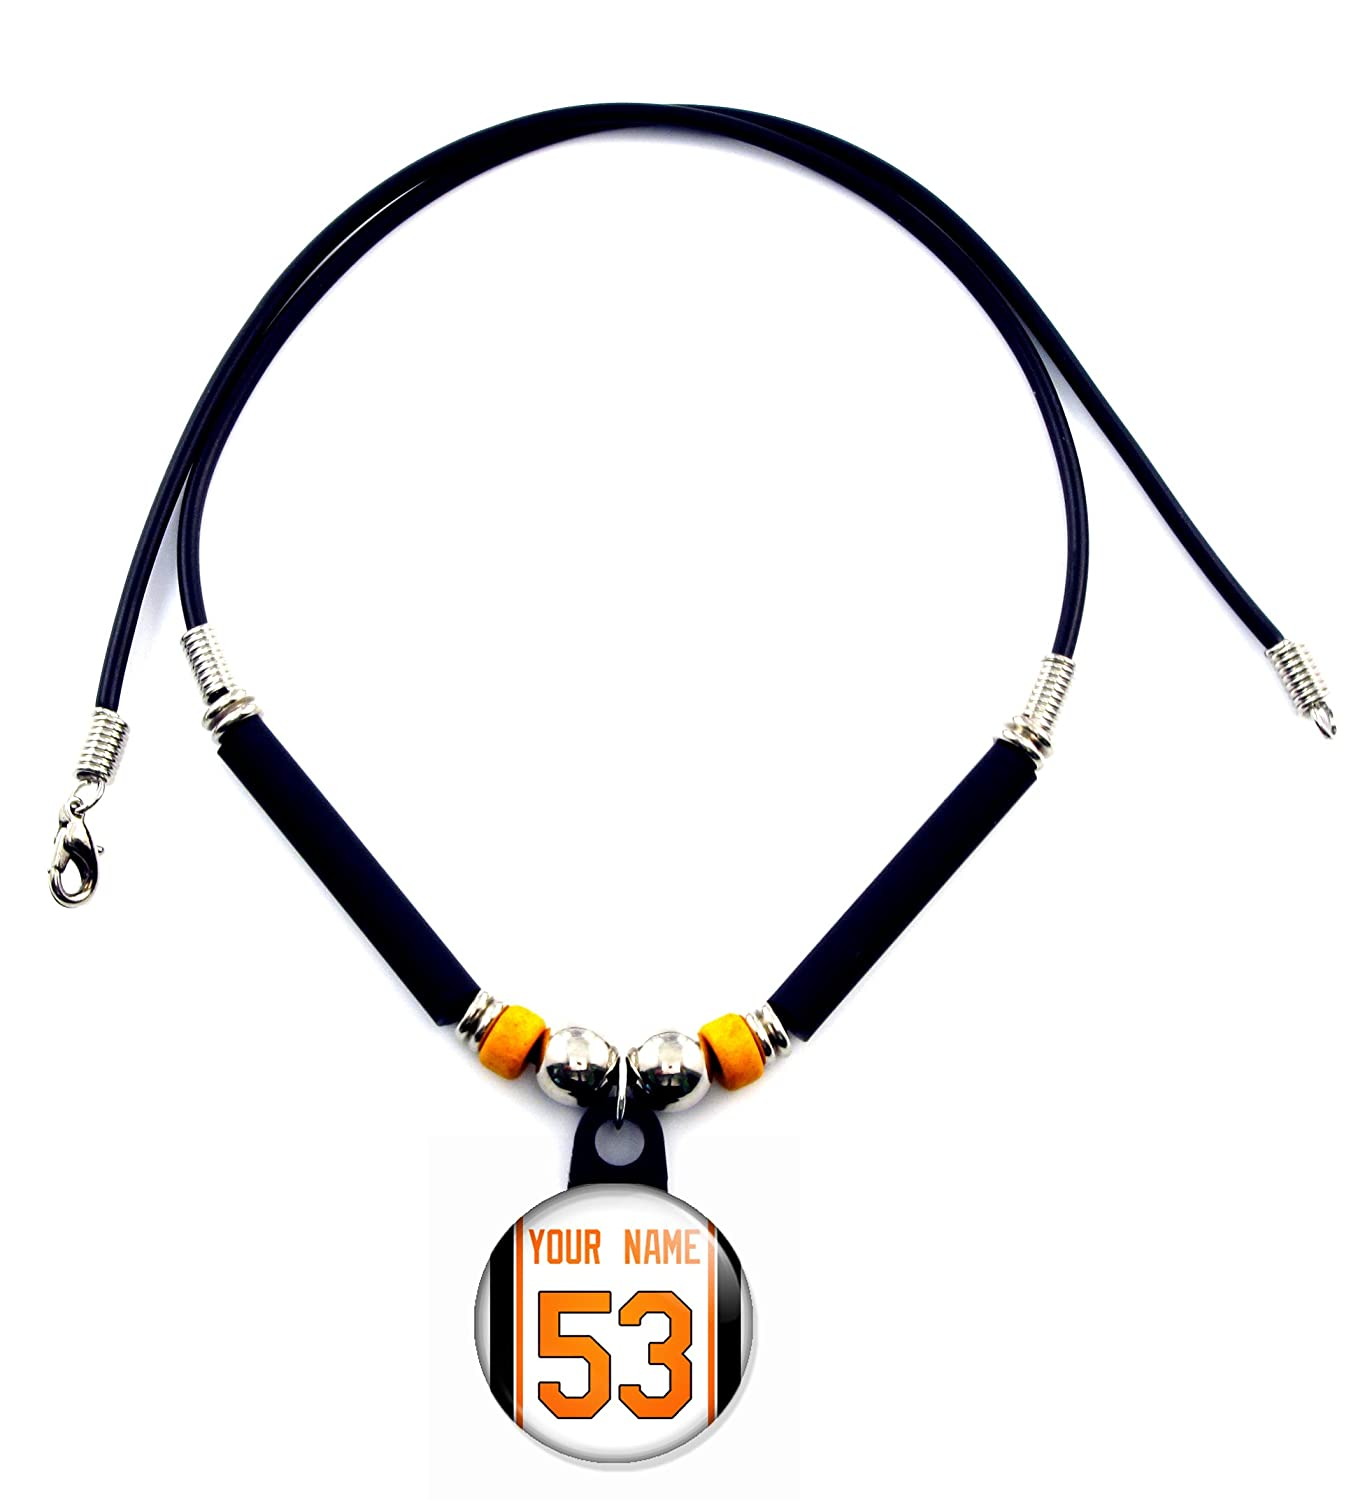 SpotlightJewels Baltimore Personalized Baseball Jersey Necklace with Your Name and Number